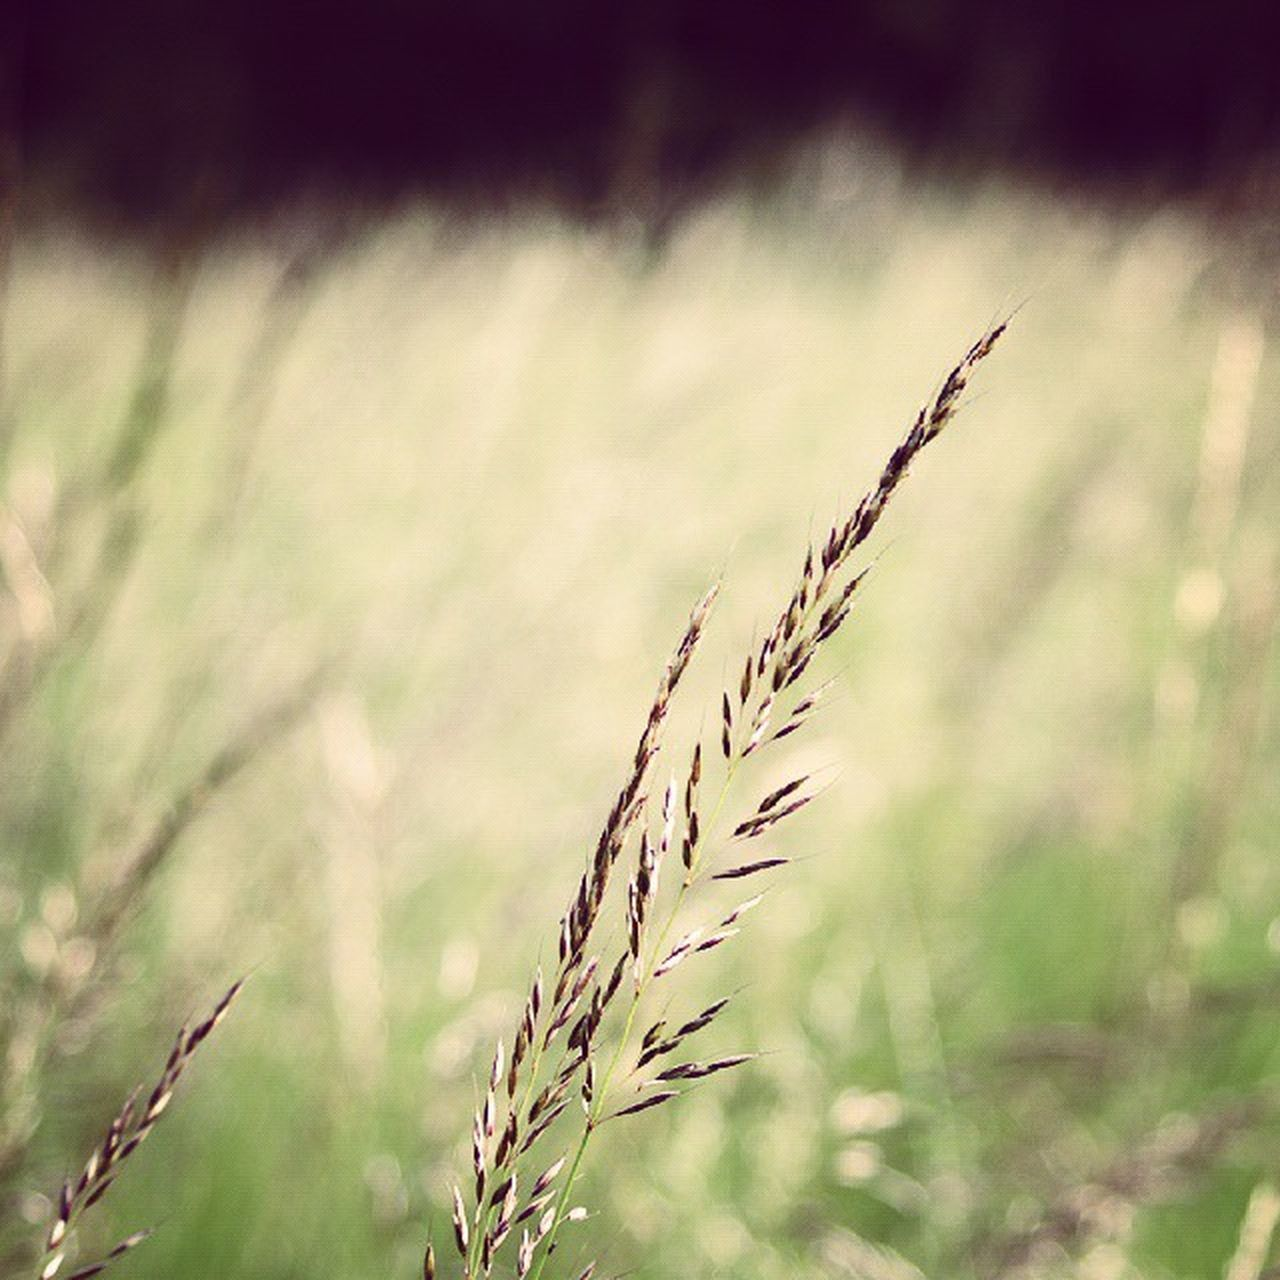 growth, nature, plant, focus on foreground, day, outdoors, tranquility, field, no people, beauty in nature, close-up